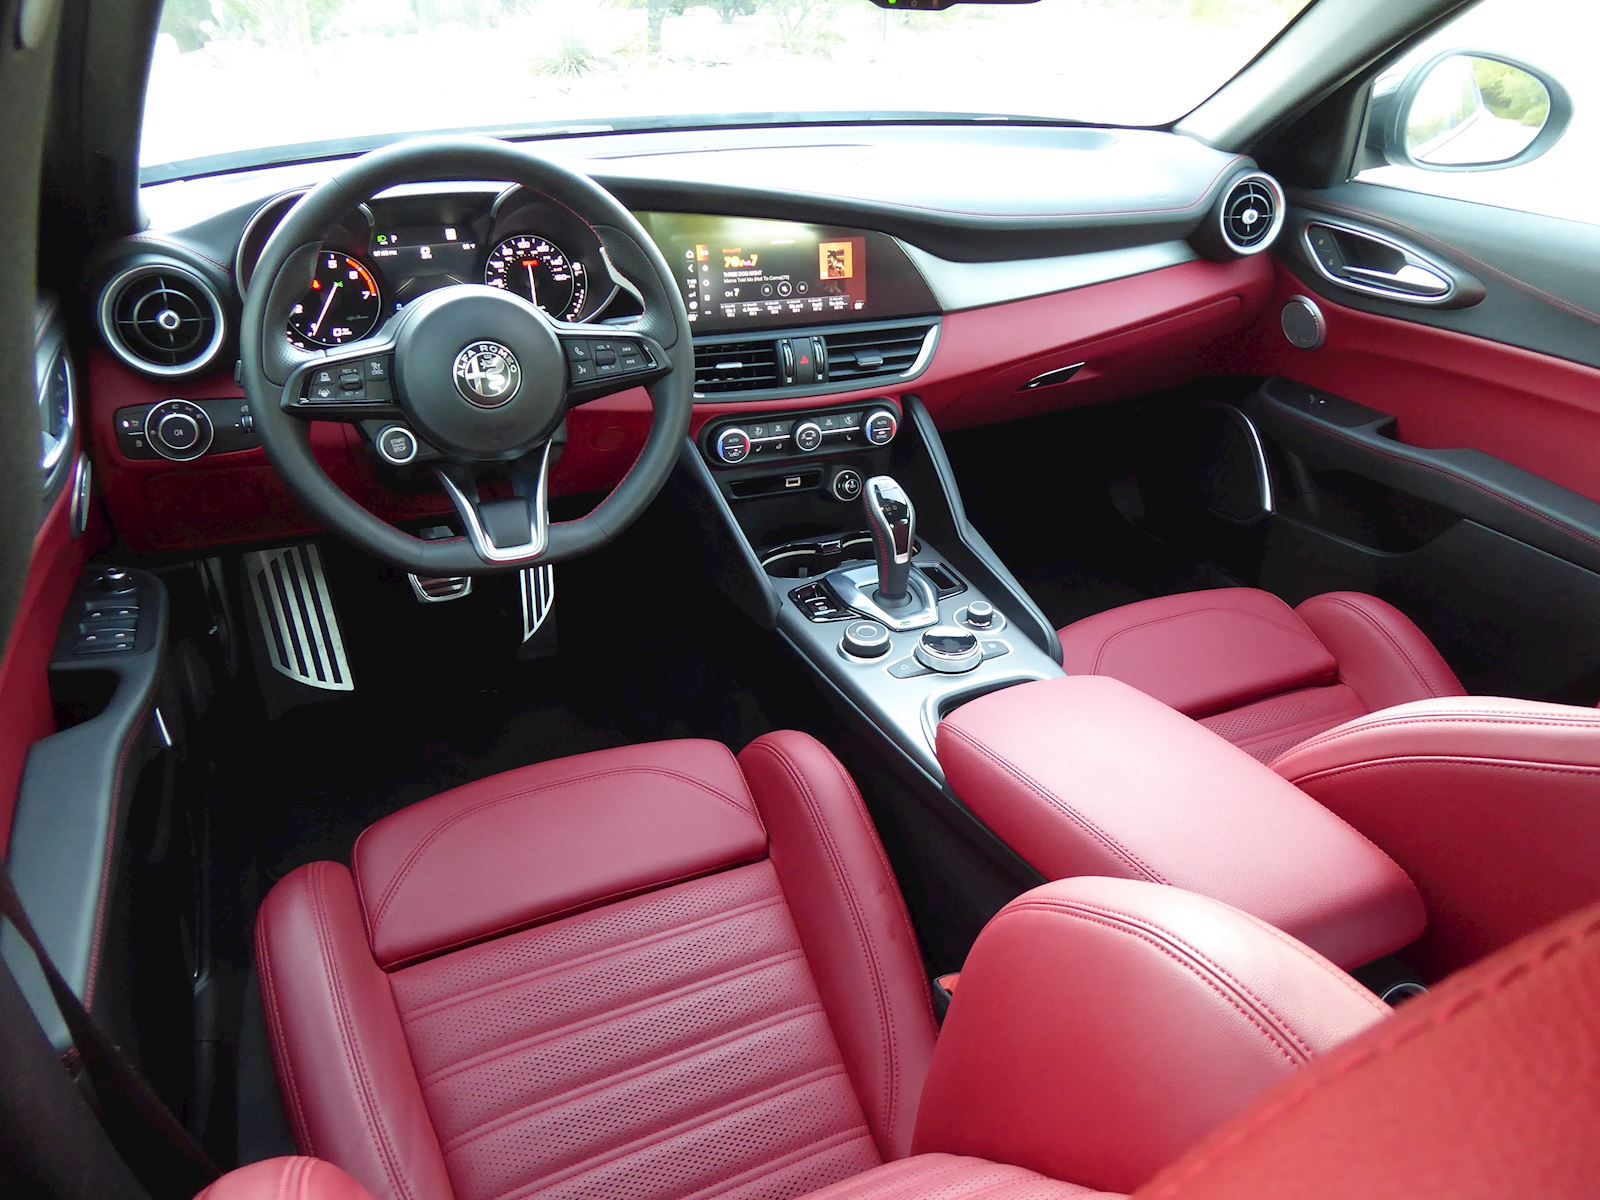 2020 Alfa Romeo Giulia dashboard interior view